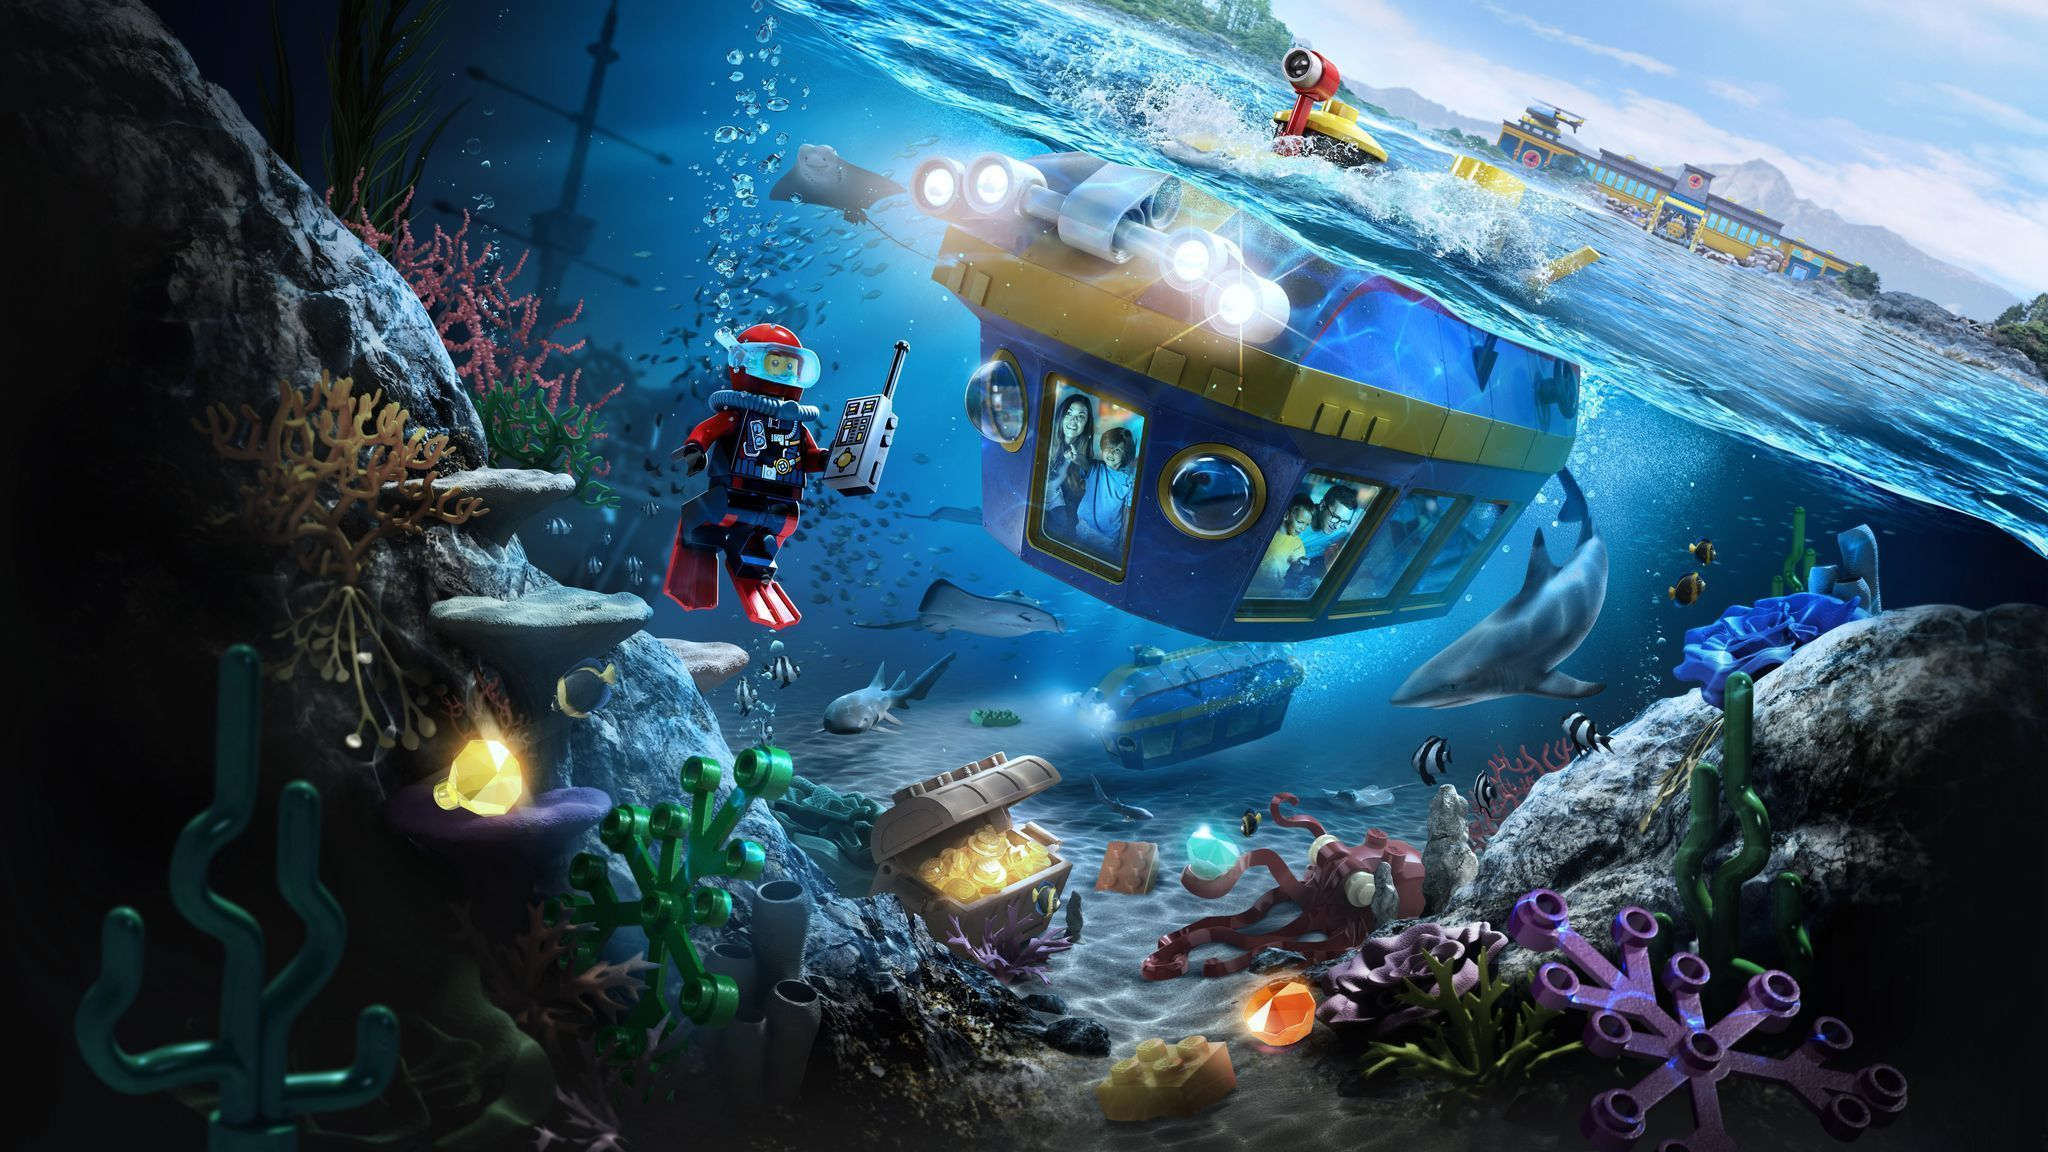 LEGO CITY ®: Deep Sea Adventure submarine ride